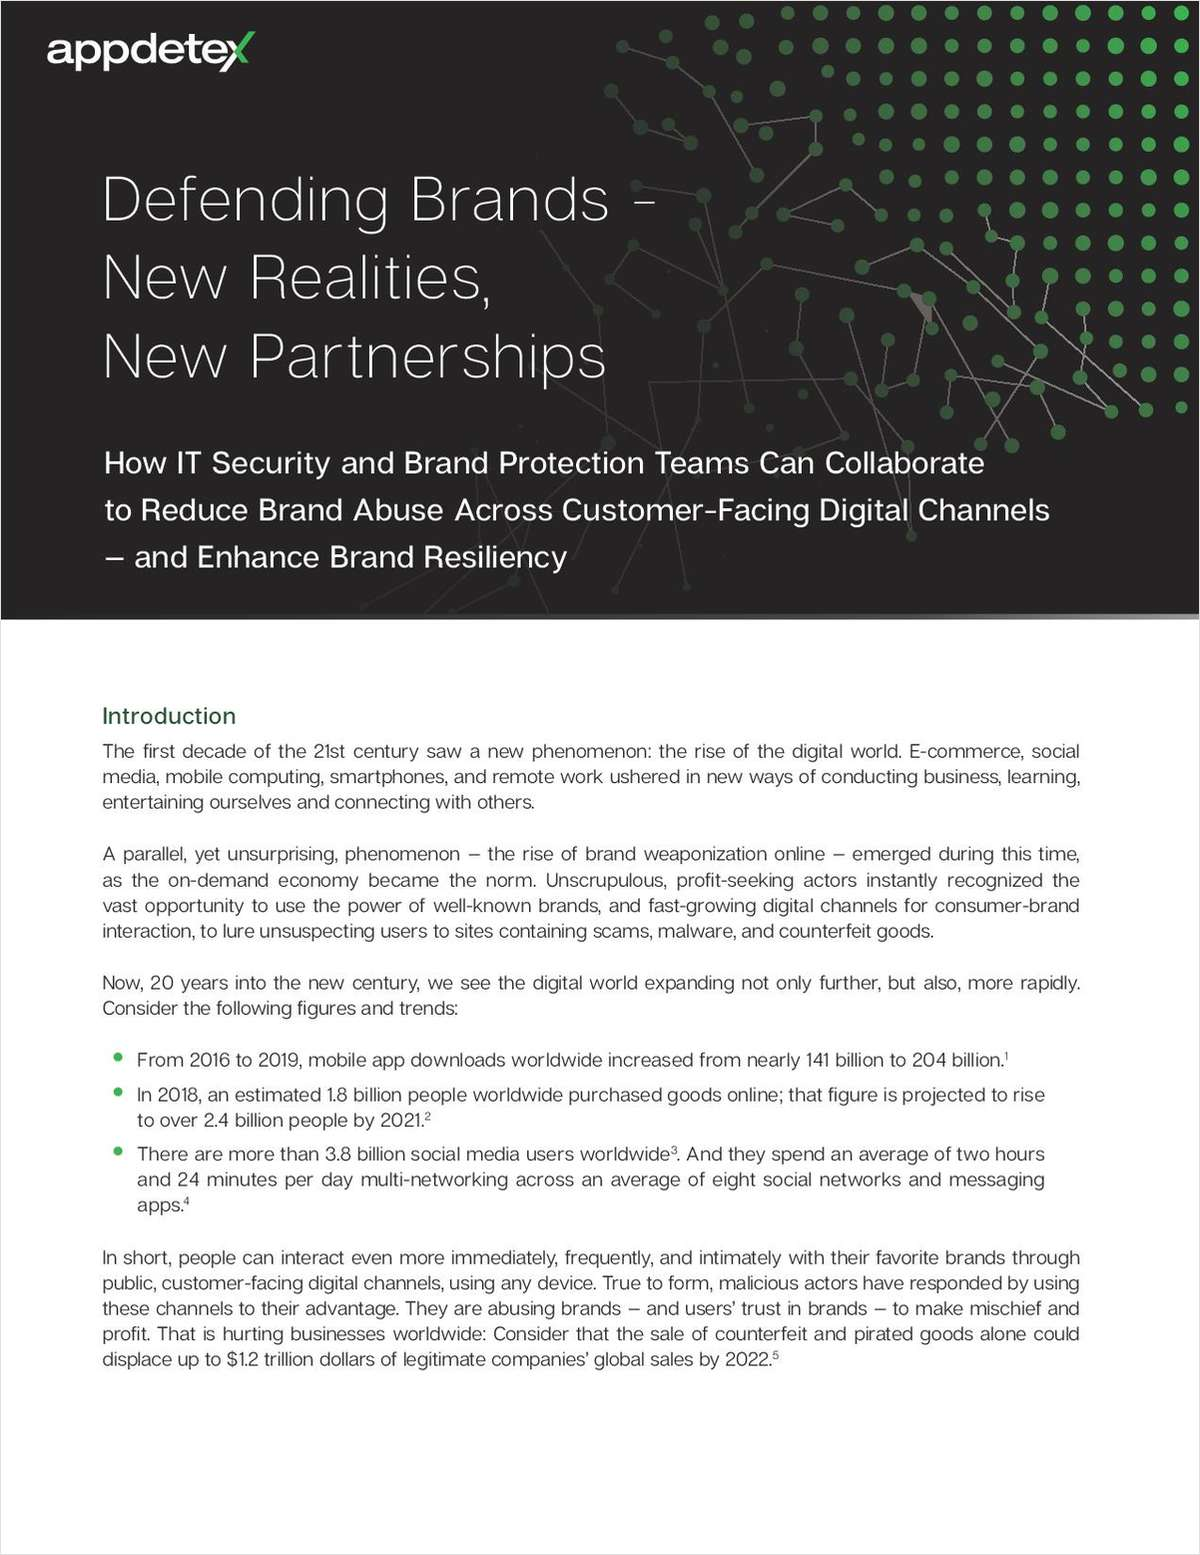 Defending Brands - How Legal and IT Security Collaborate to Reduce Brand Abuse